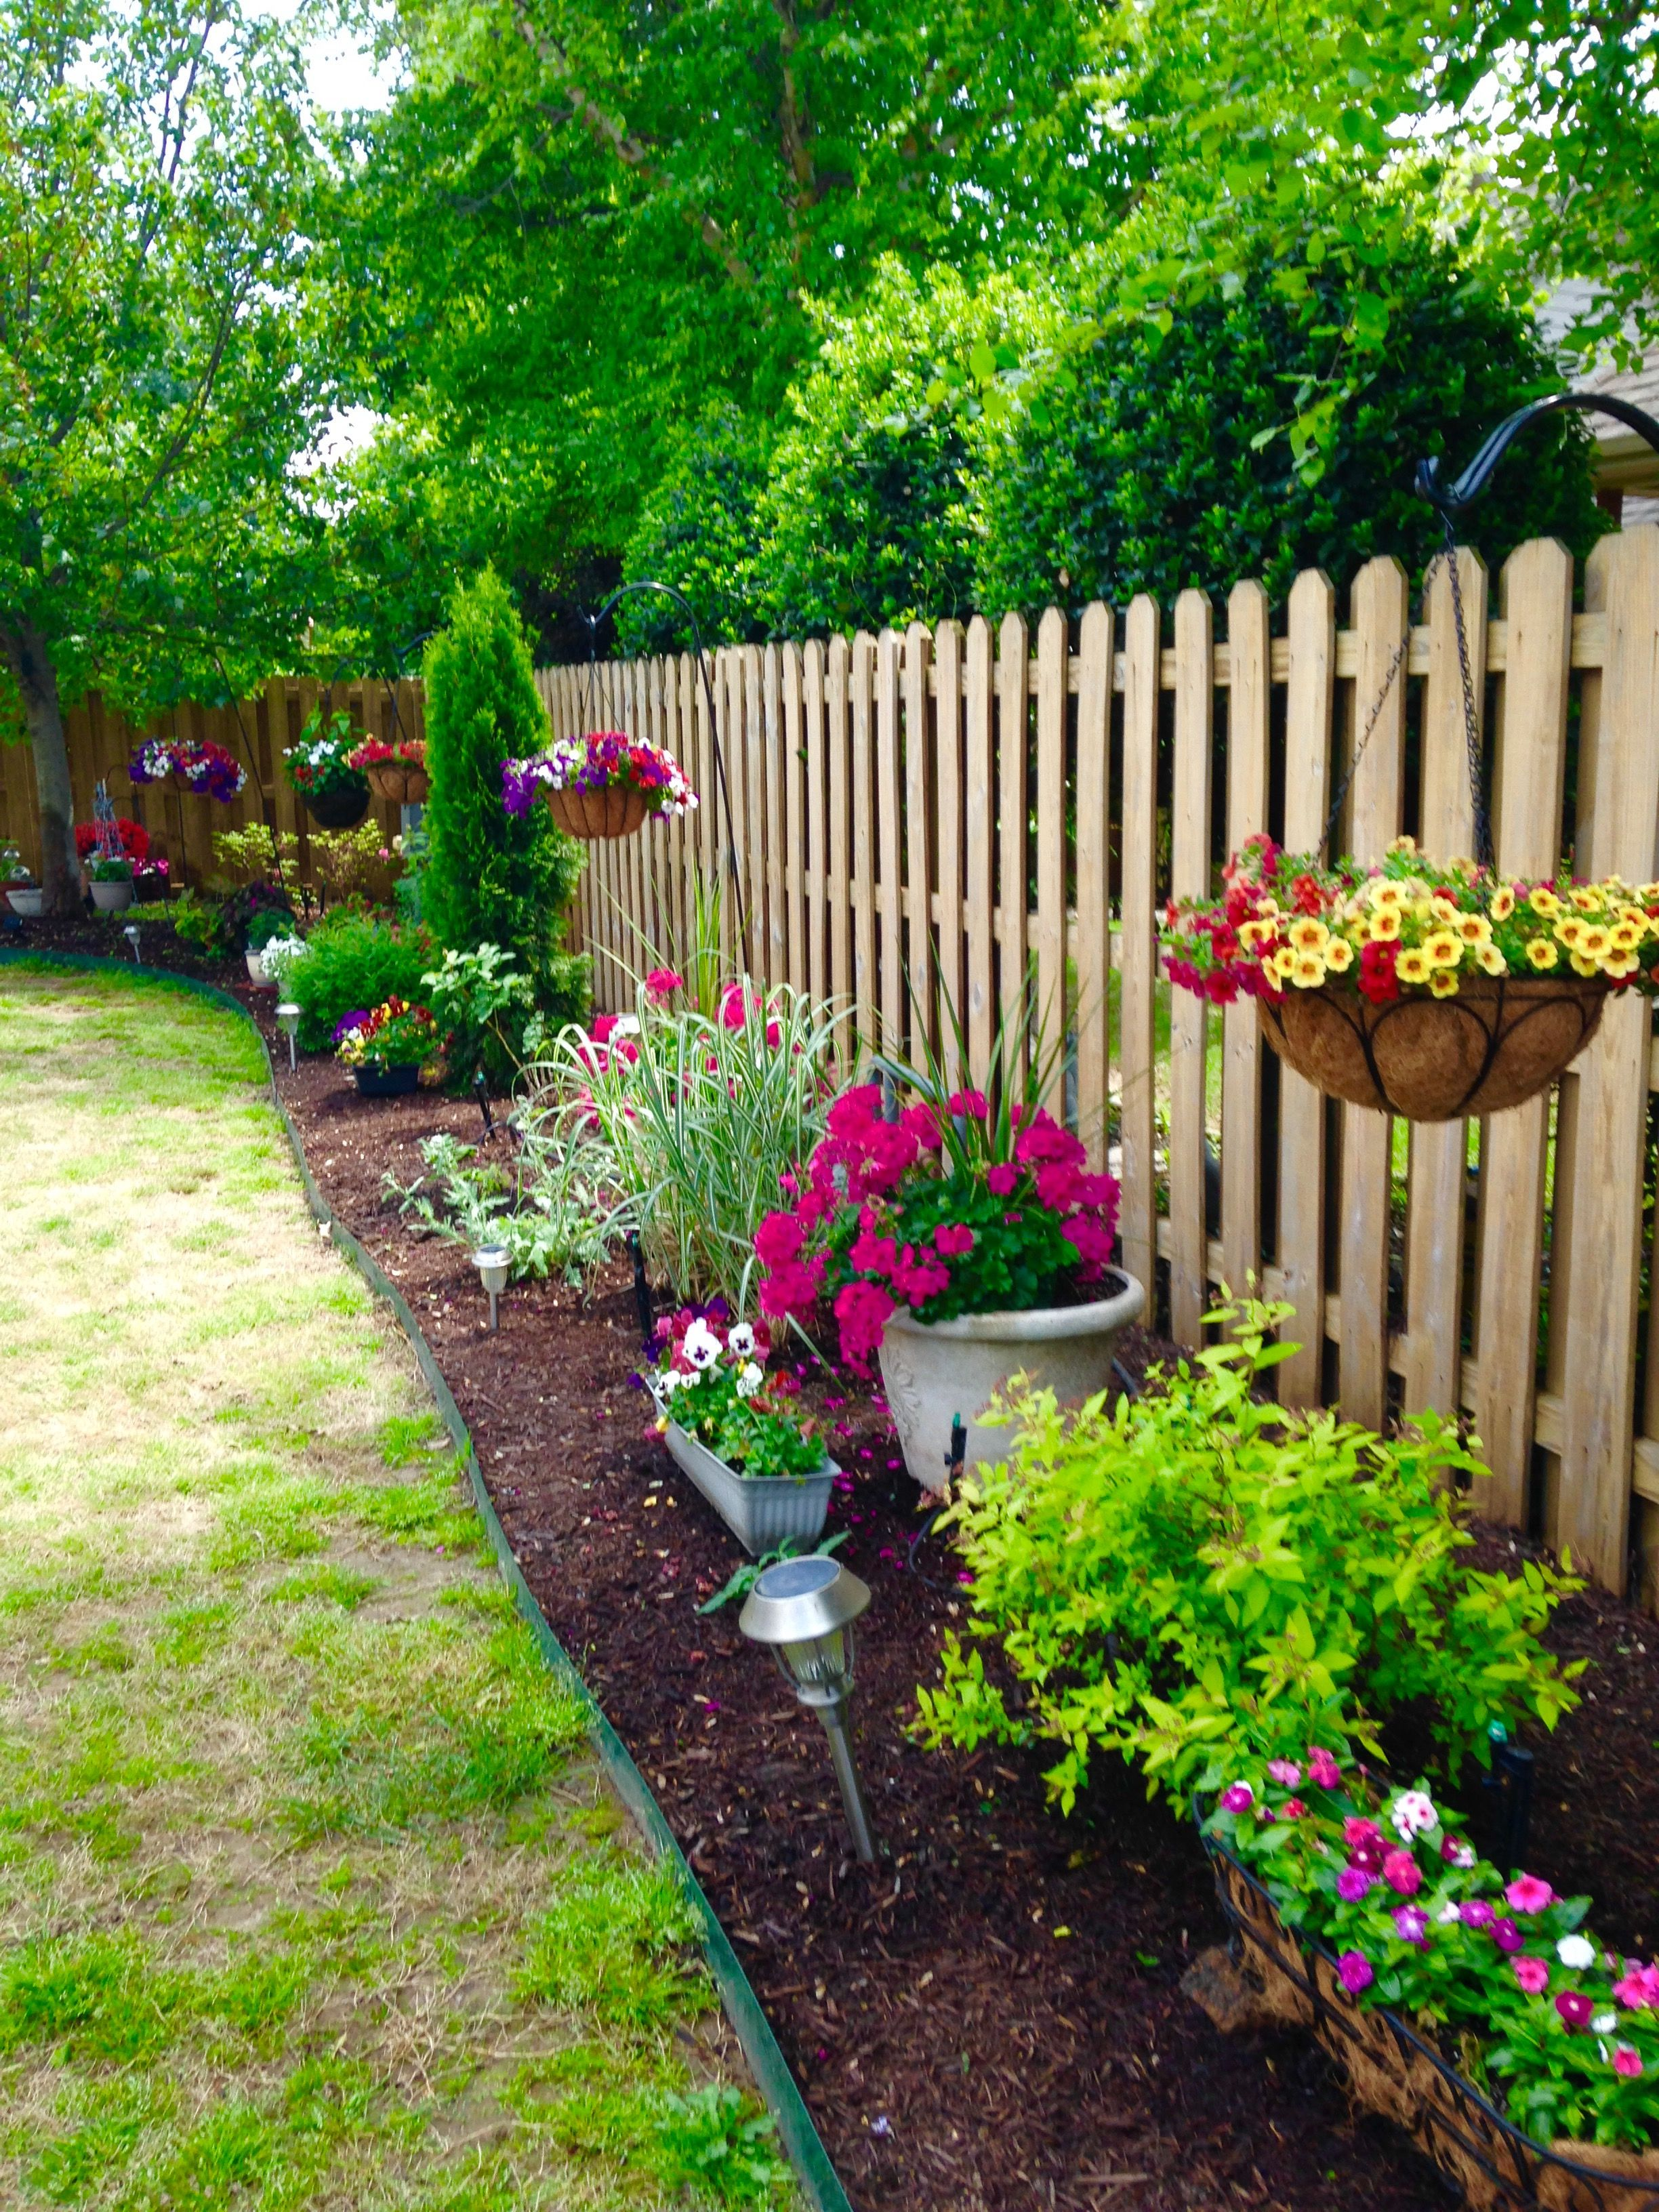 My spring flowers! Backyard landscaping designs